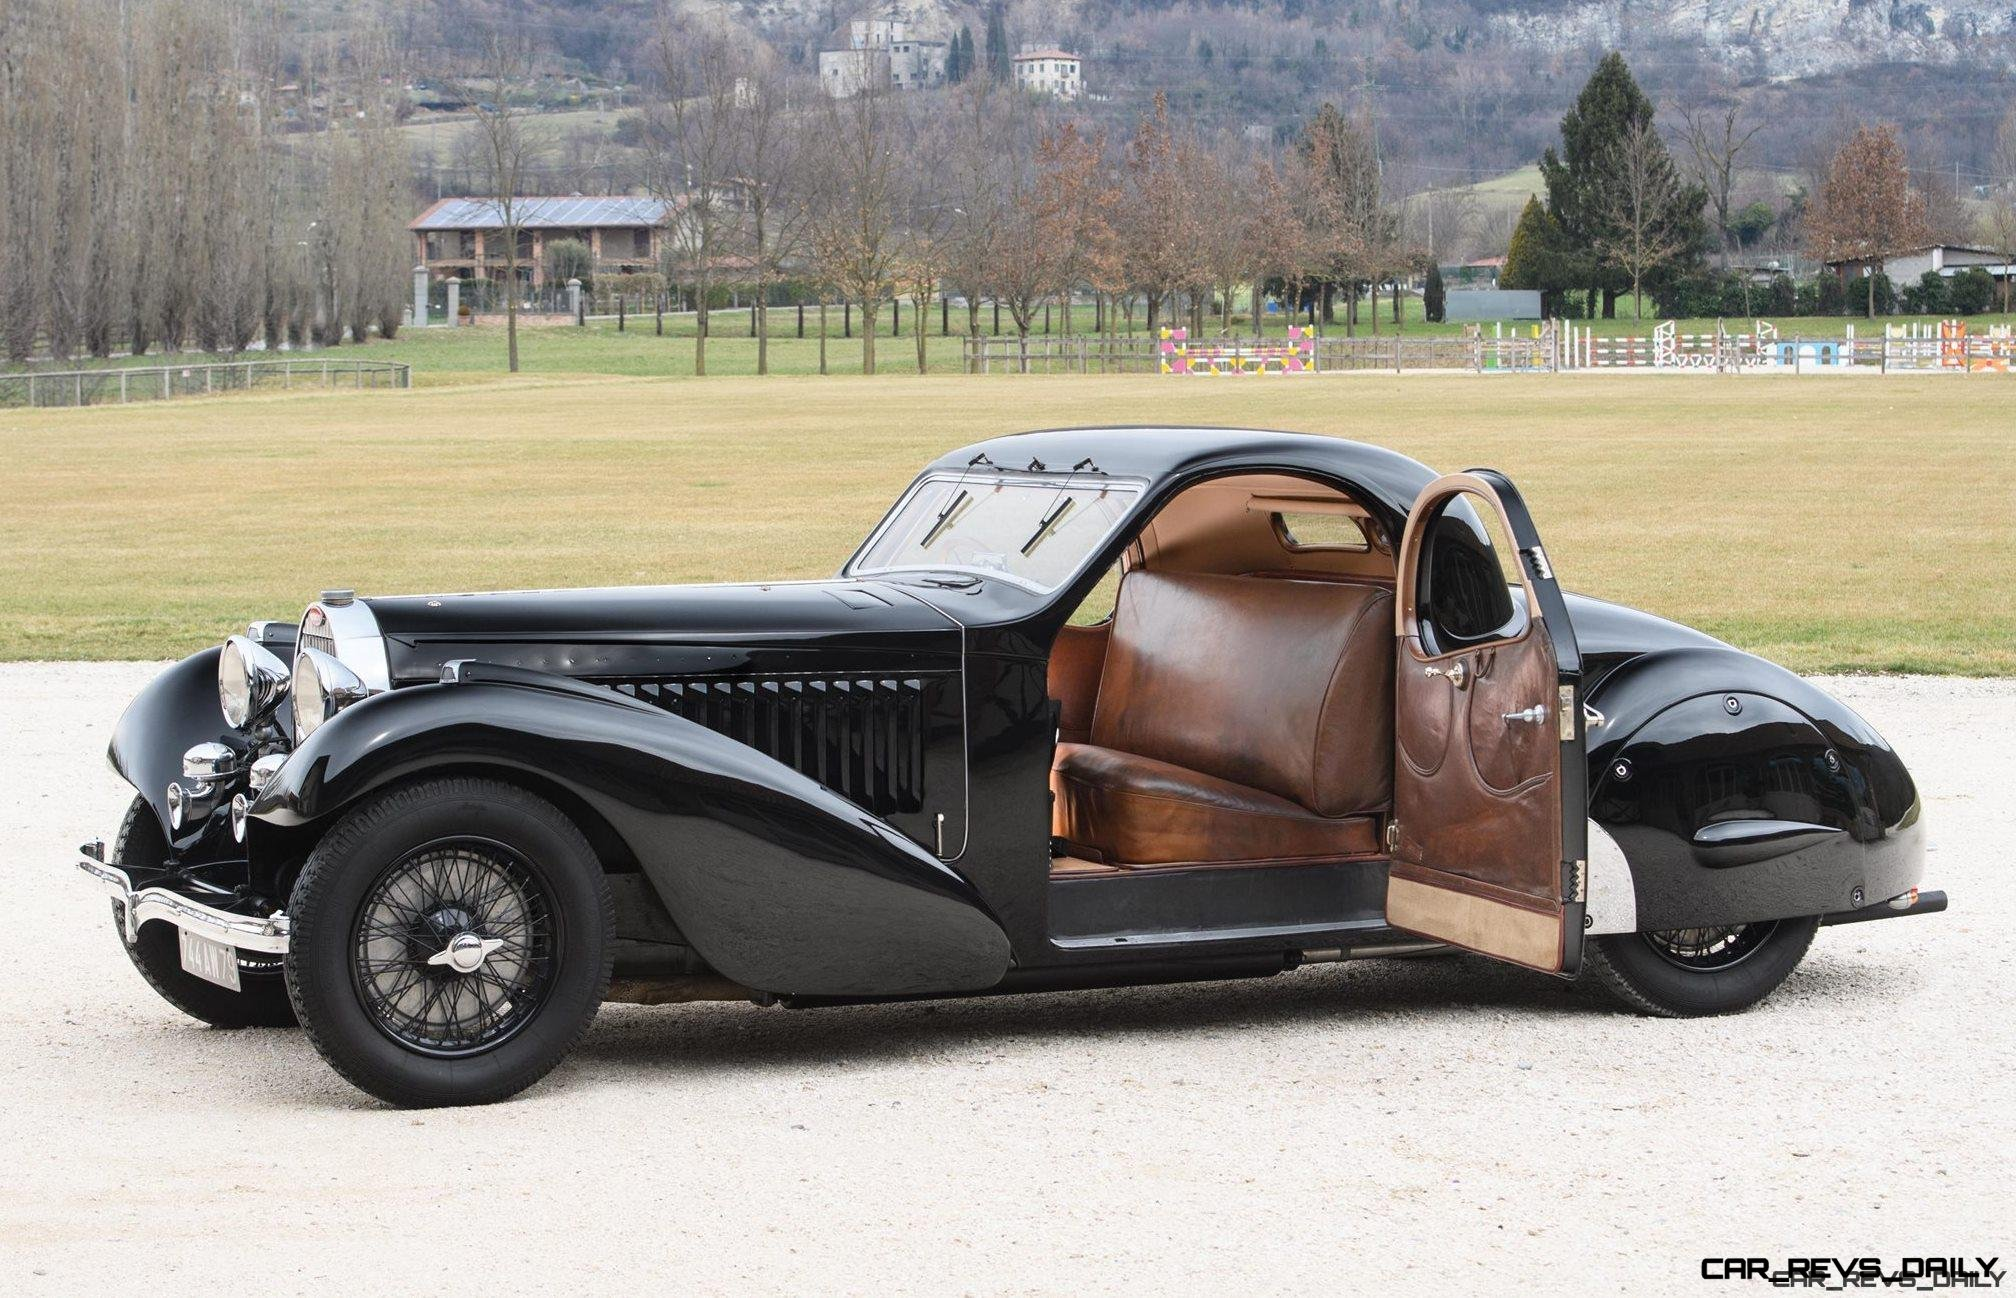 hall of fame 1935 bugatti type 57 atalante prototype by carrosserie bugatti best of 2017 awards. Black Bedroom Furniture Sets. Home Design Ideas